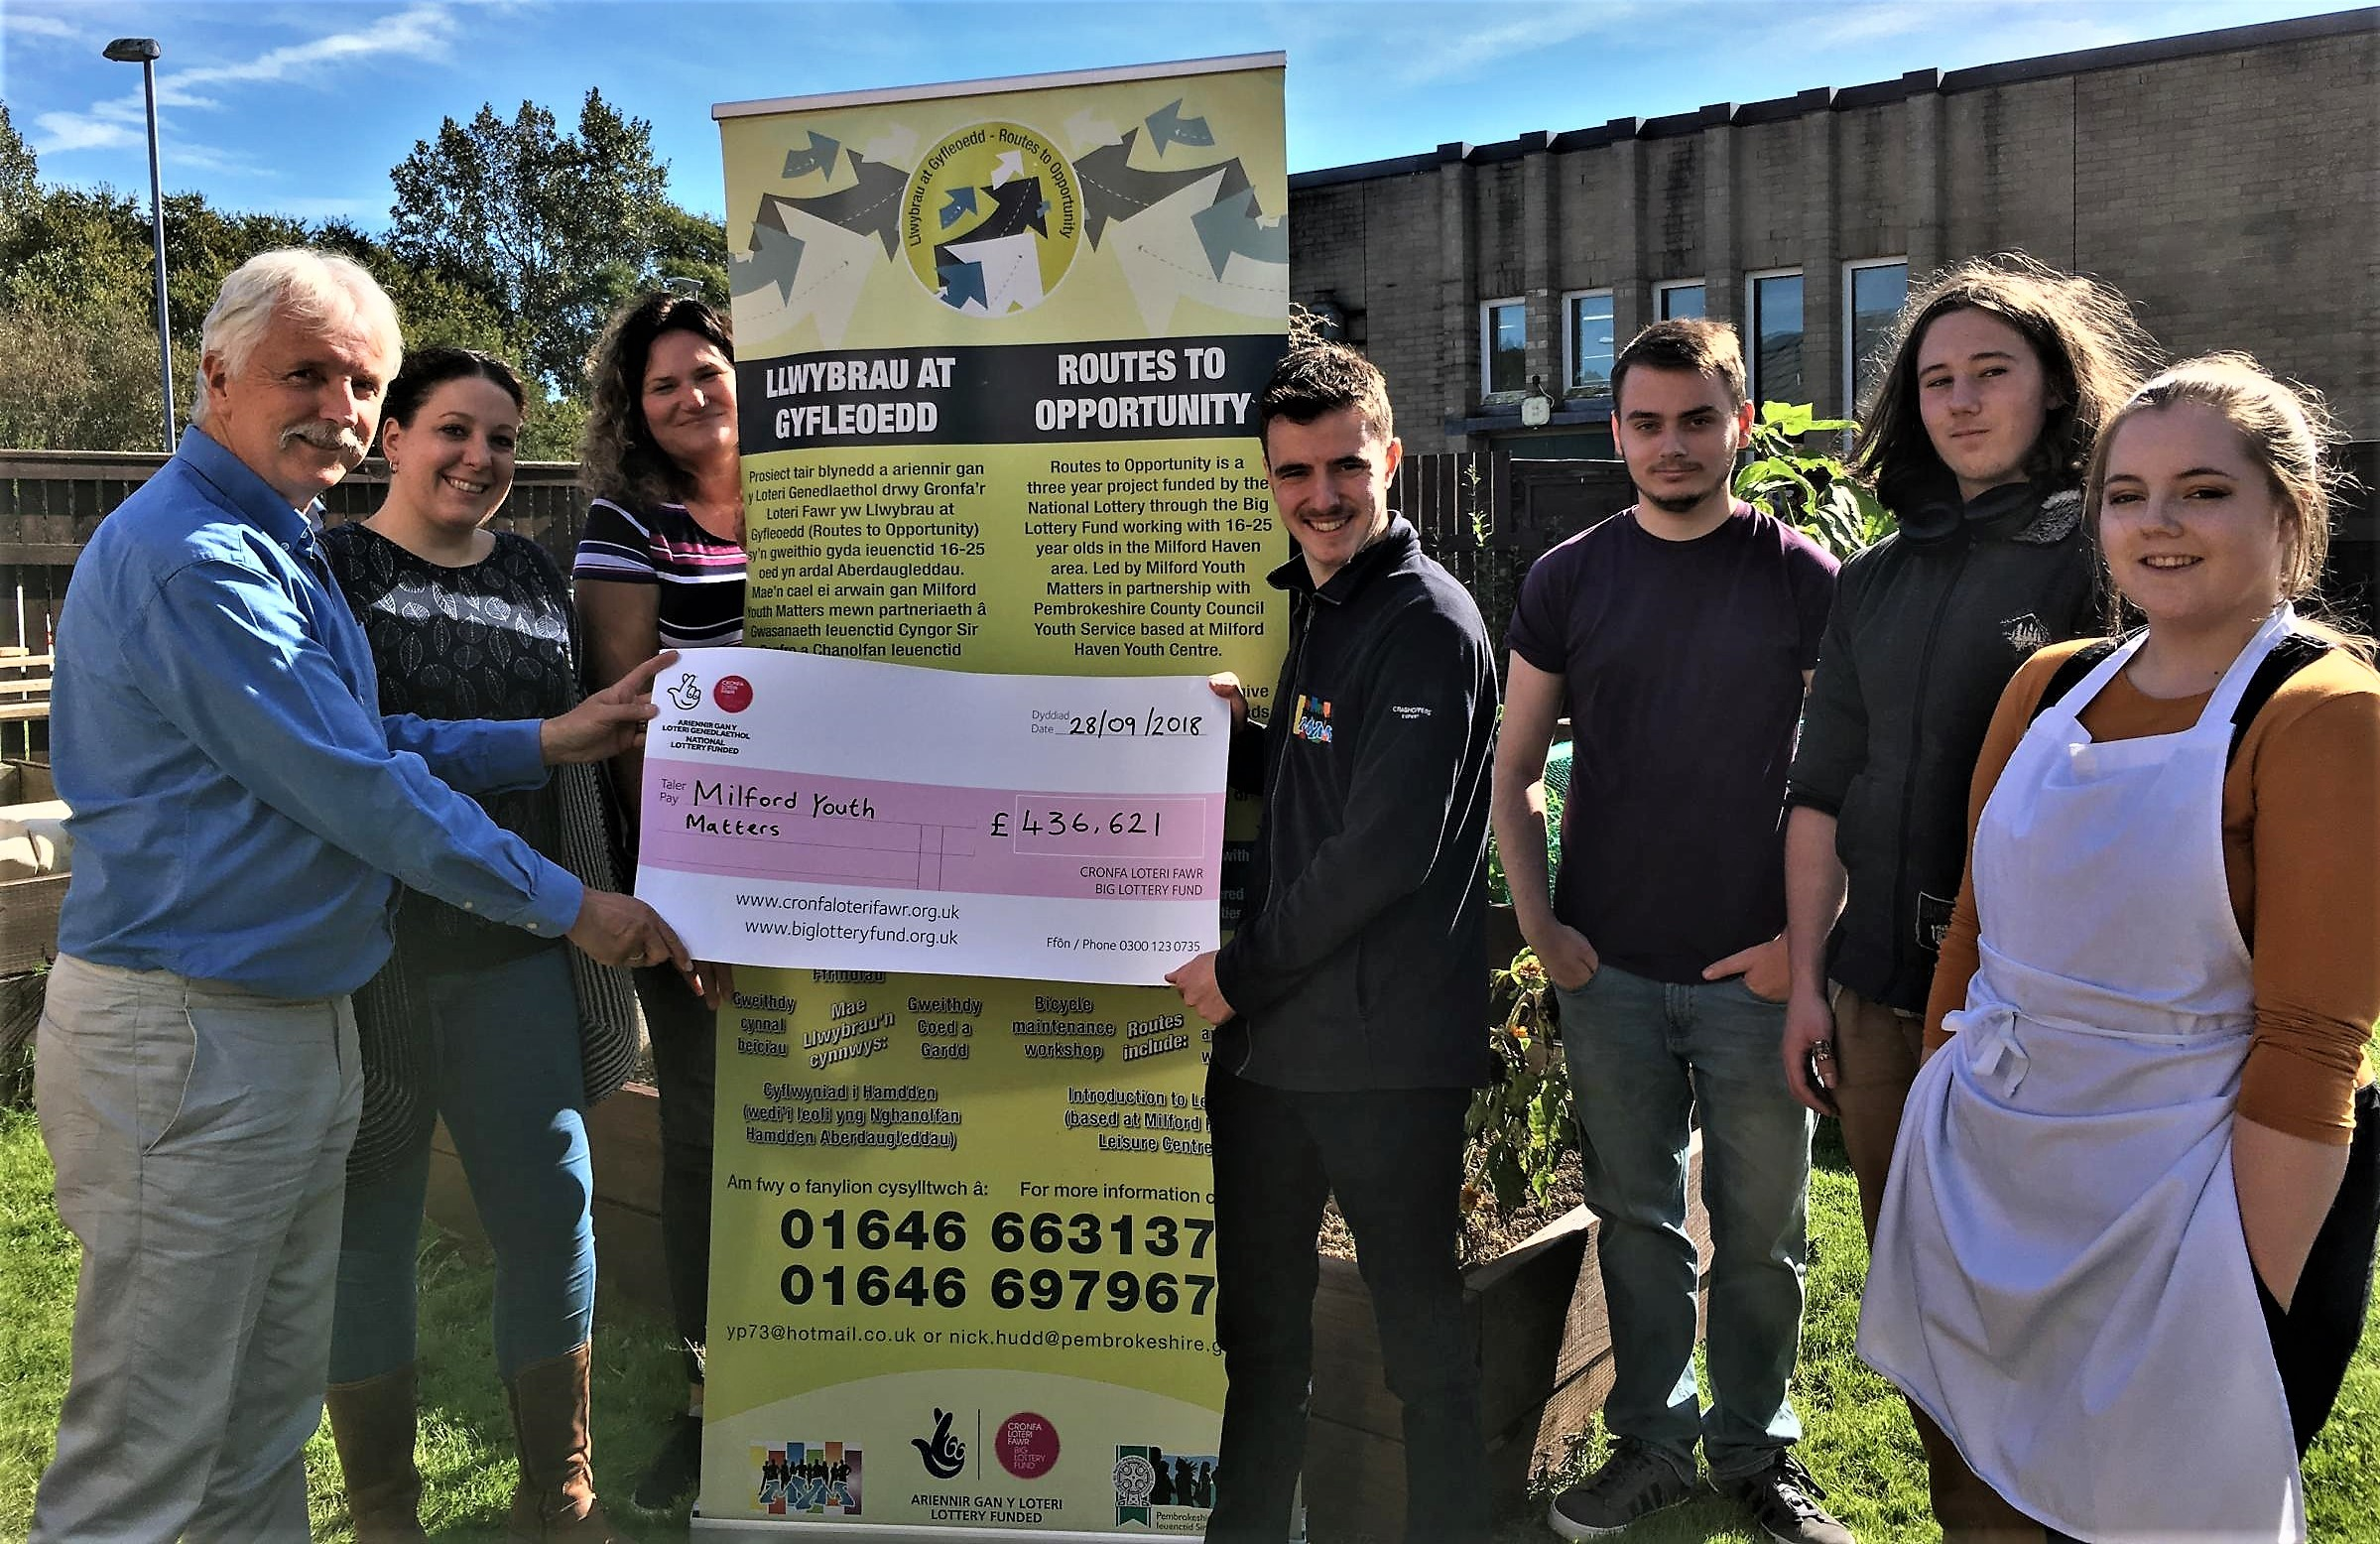 Milford Youth Matters has received more than £400,000 in Big Lottery funding.